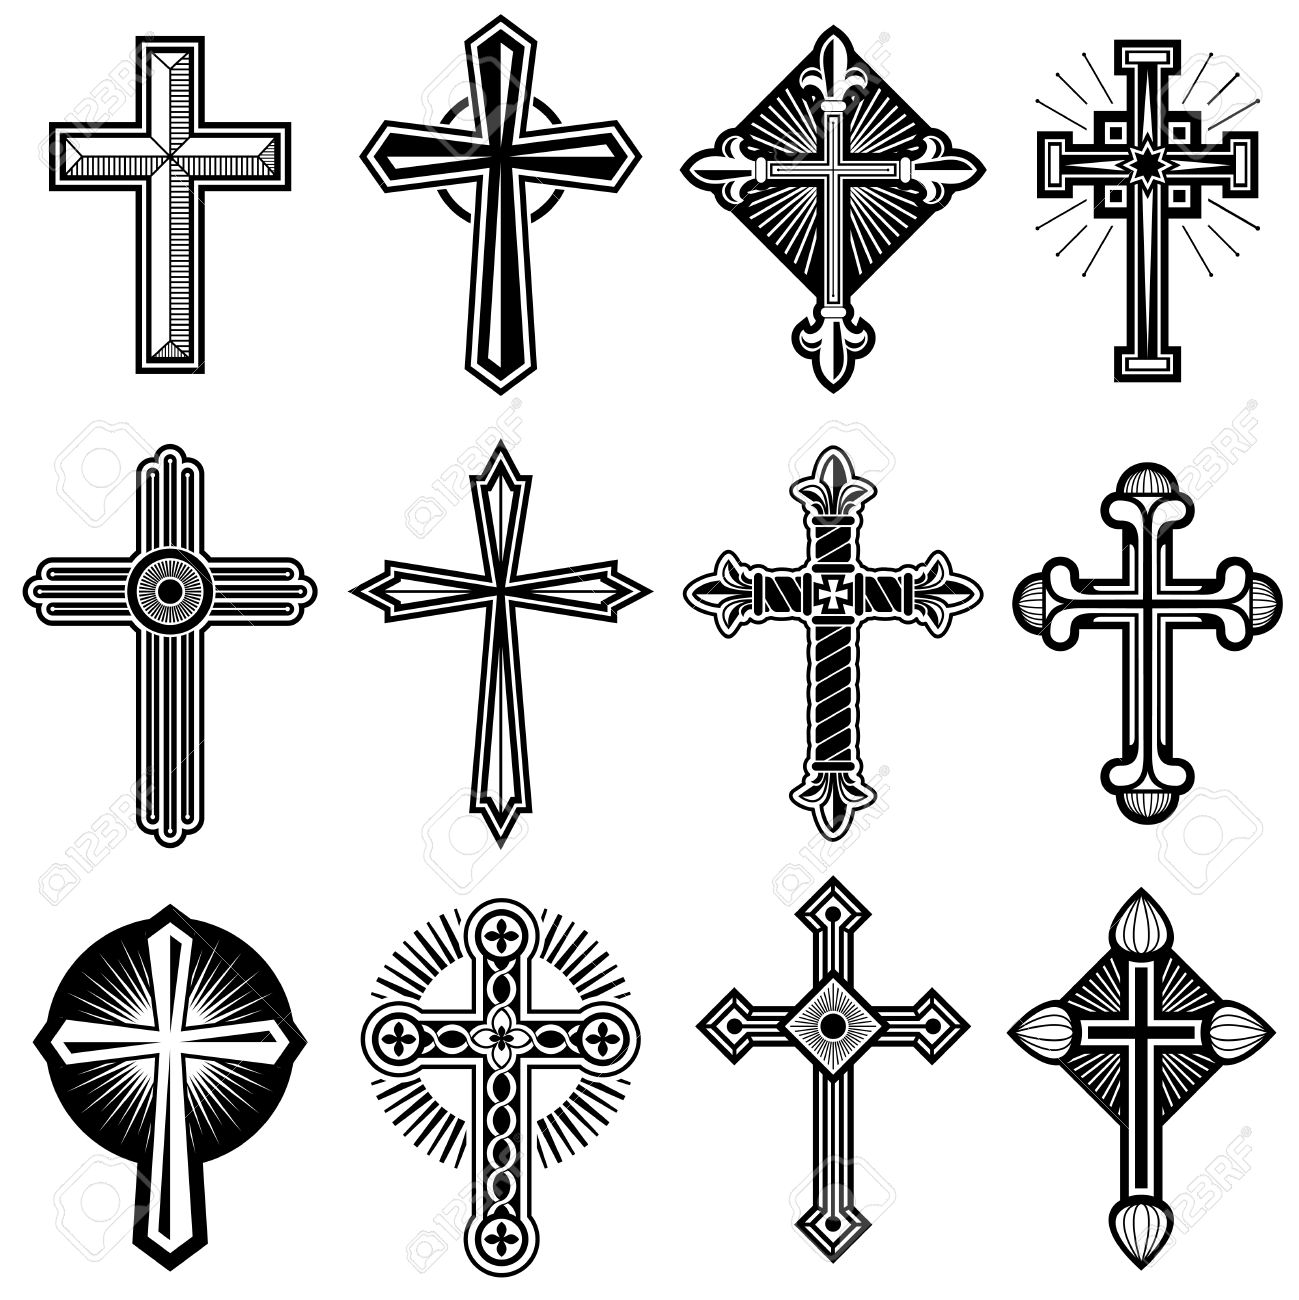 Catholic Christian Cross With Ornament Vector Icons Set Of